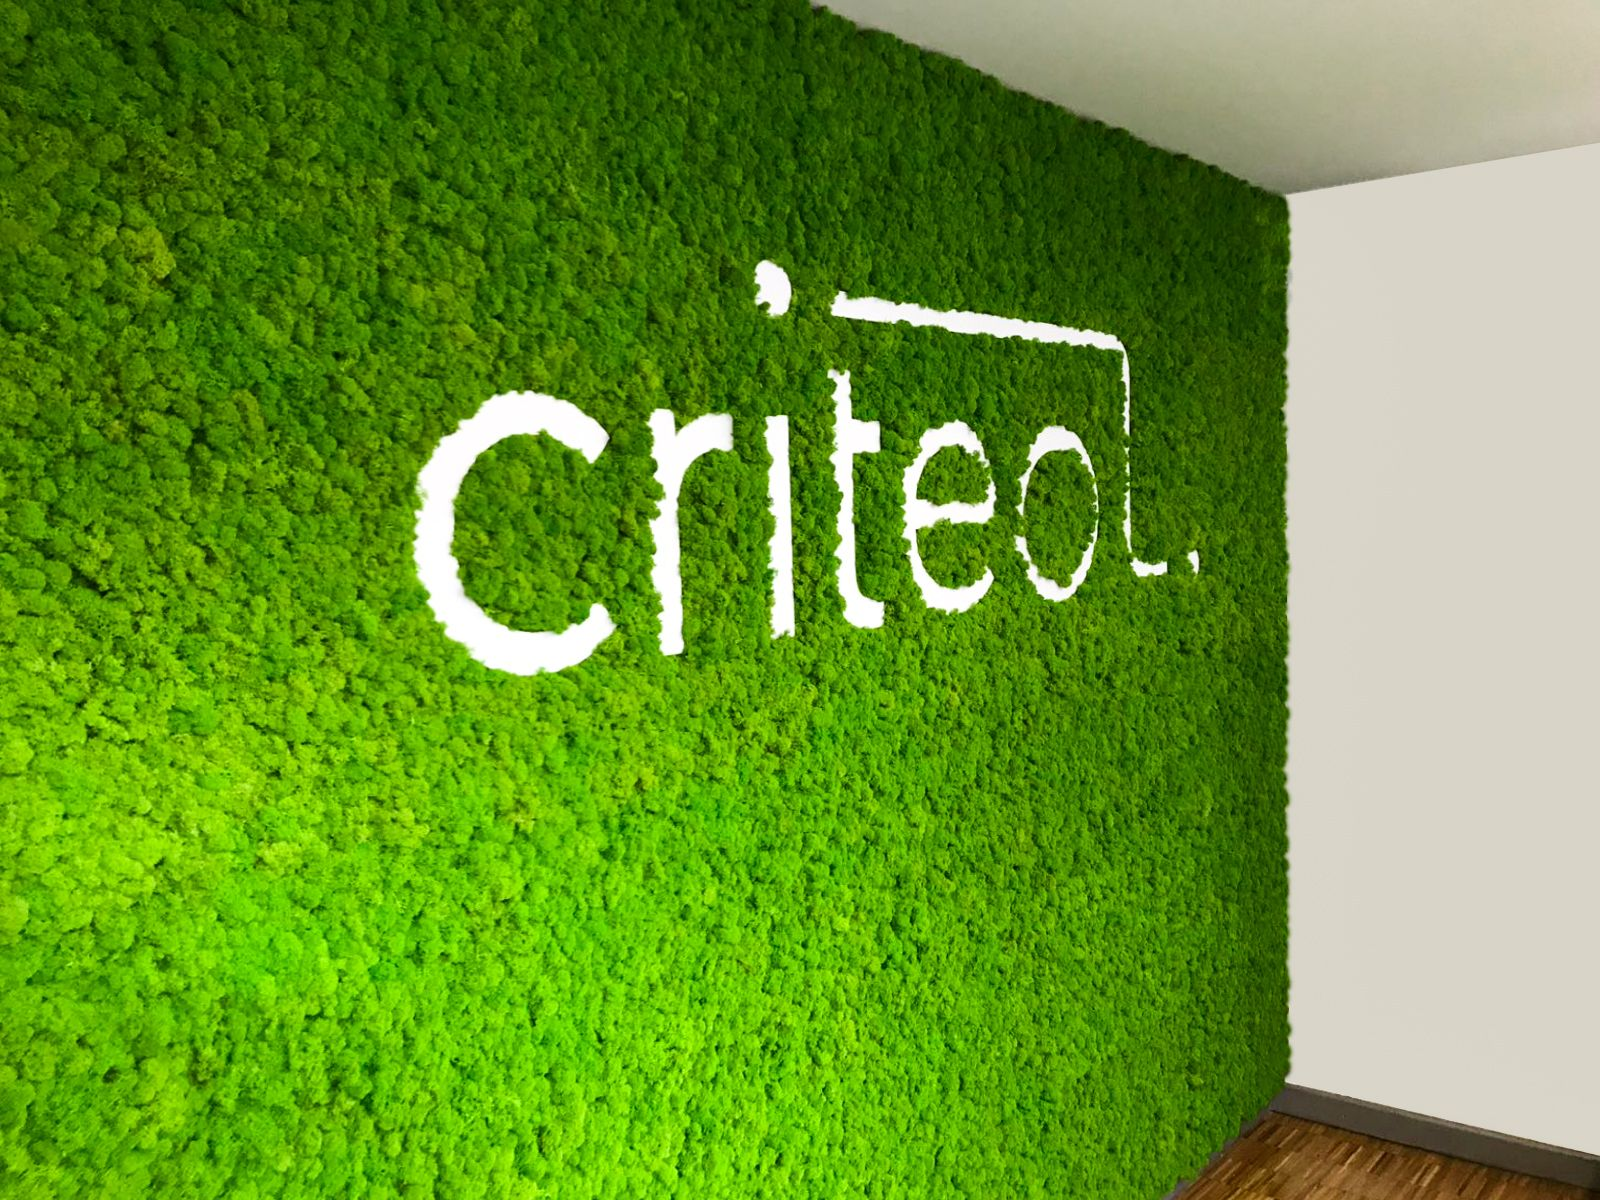 Pareti Verdi Verticali Costi moss design | moss wall art, logo wall, wall accessories